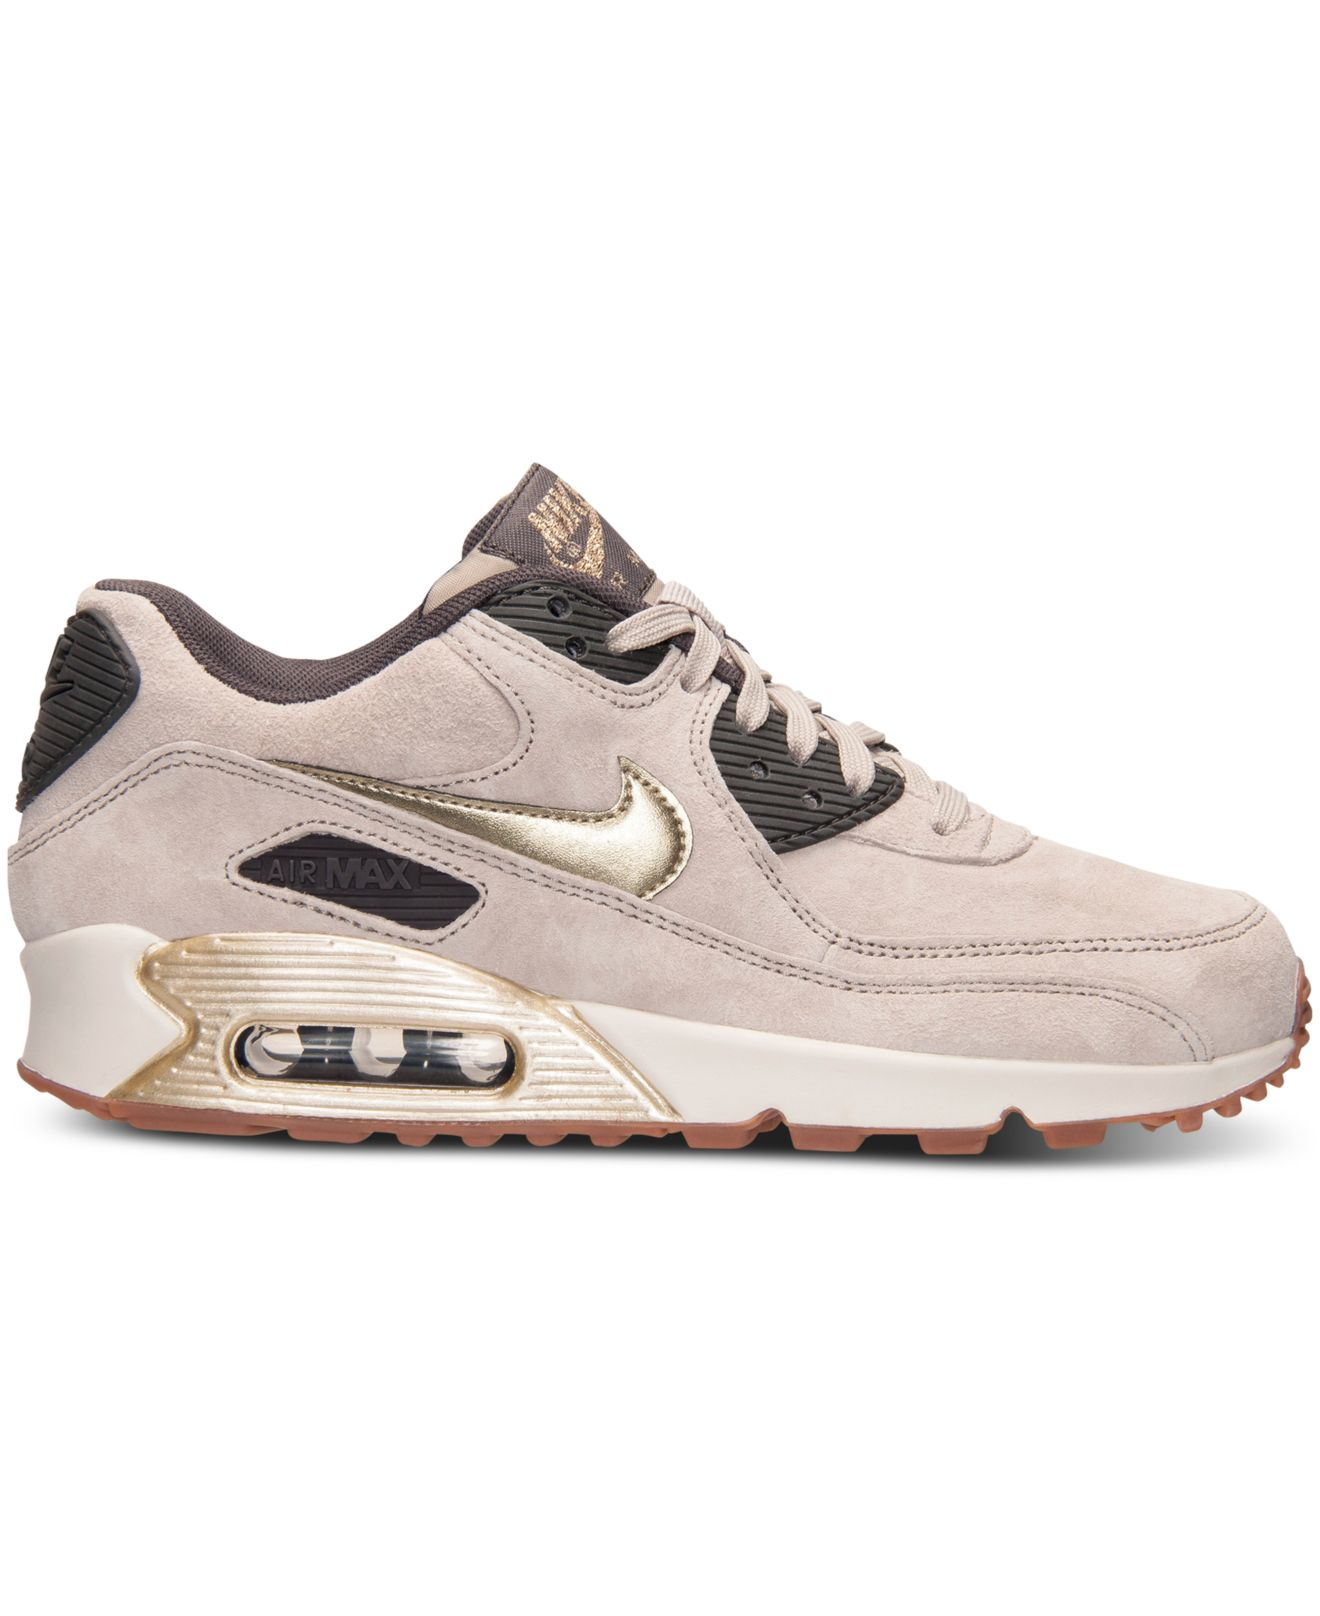 Lyst - Nike Women s Air Max 90 Premium Suede Running Sneakers From ... c8dd2a931